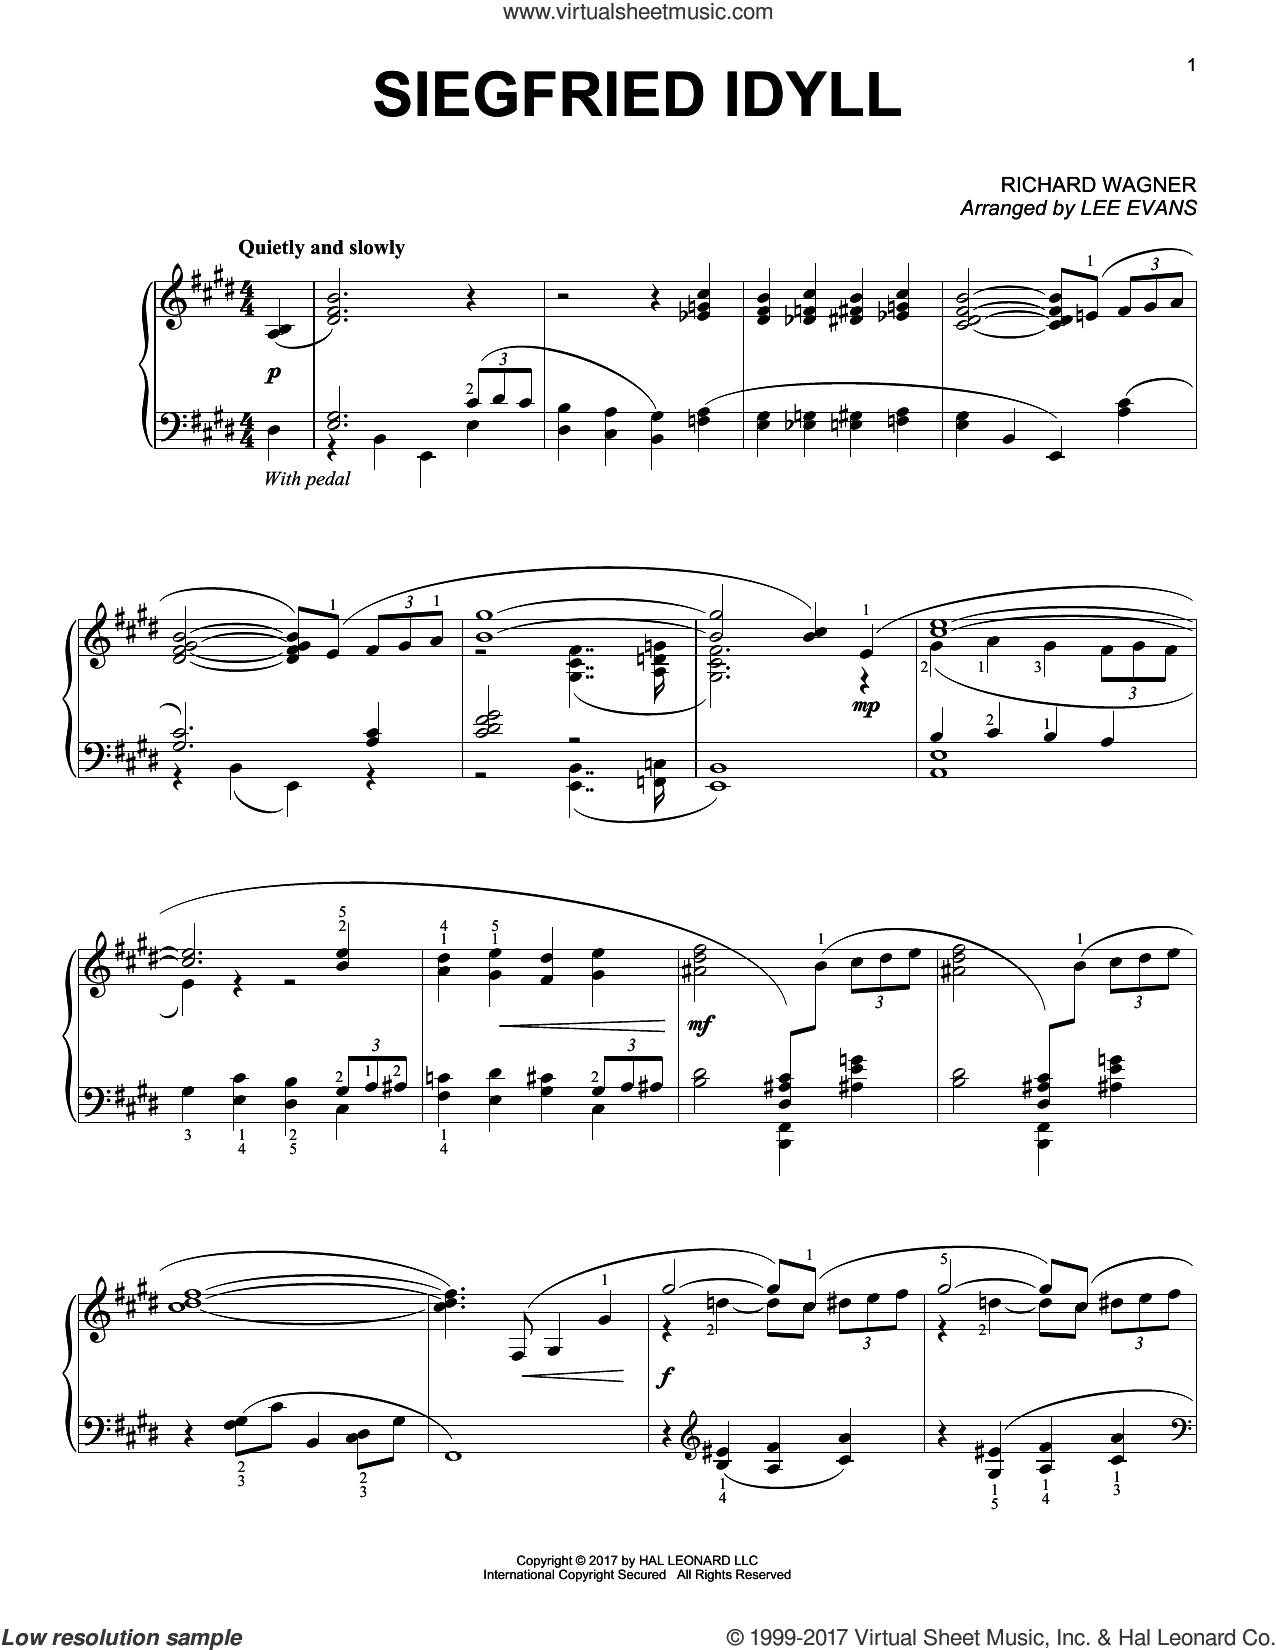 Siegried Idyll sheet music for piano solo by Richard Wagner and Lee Evans, classical score, intermediate skill level